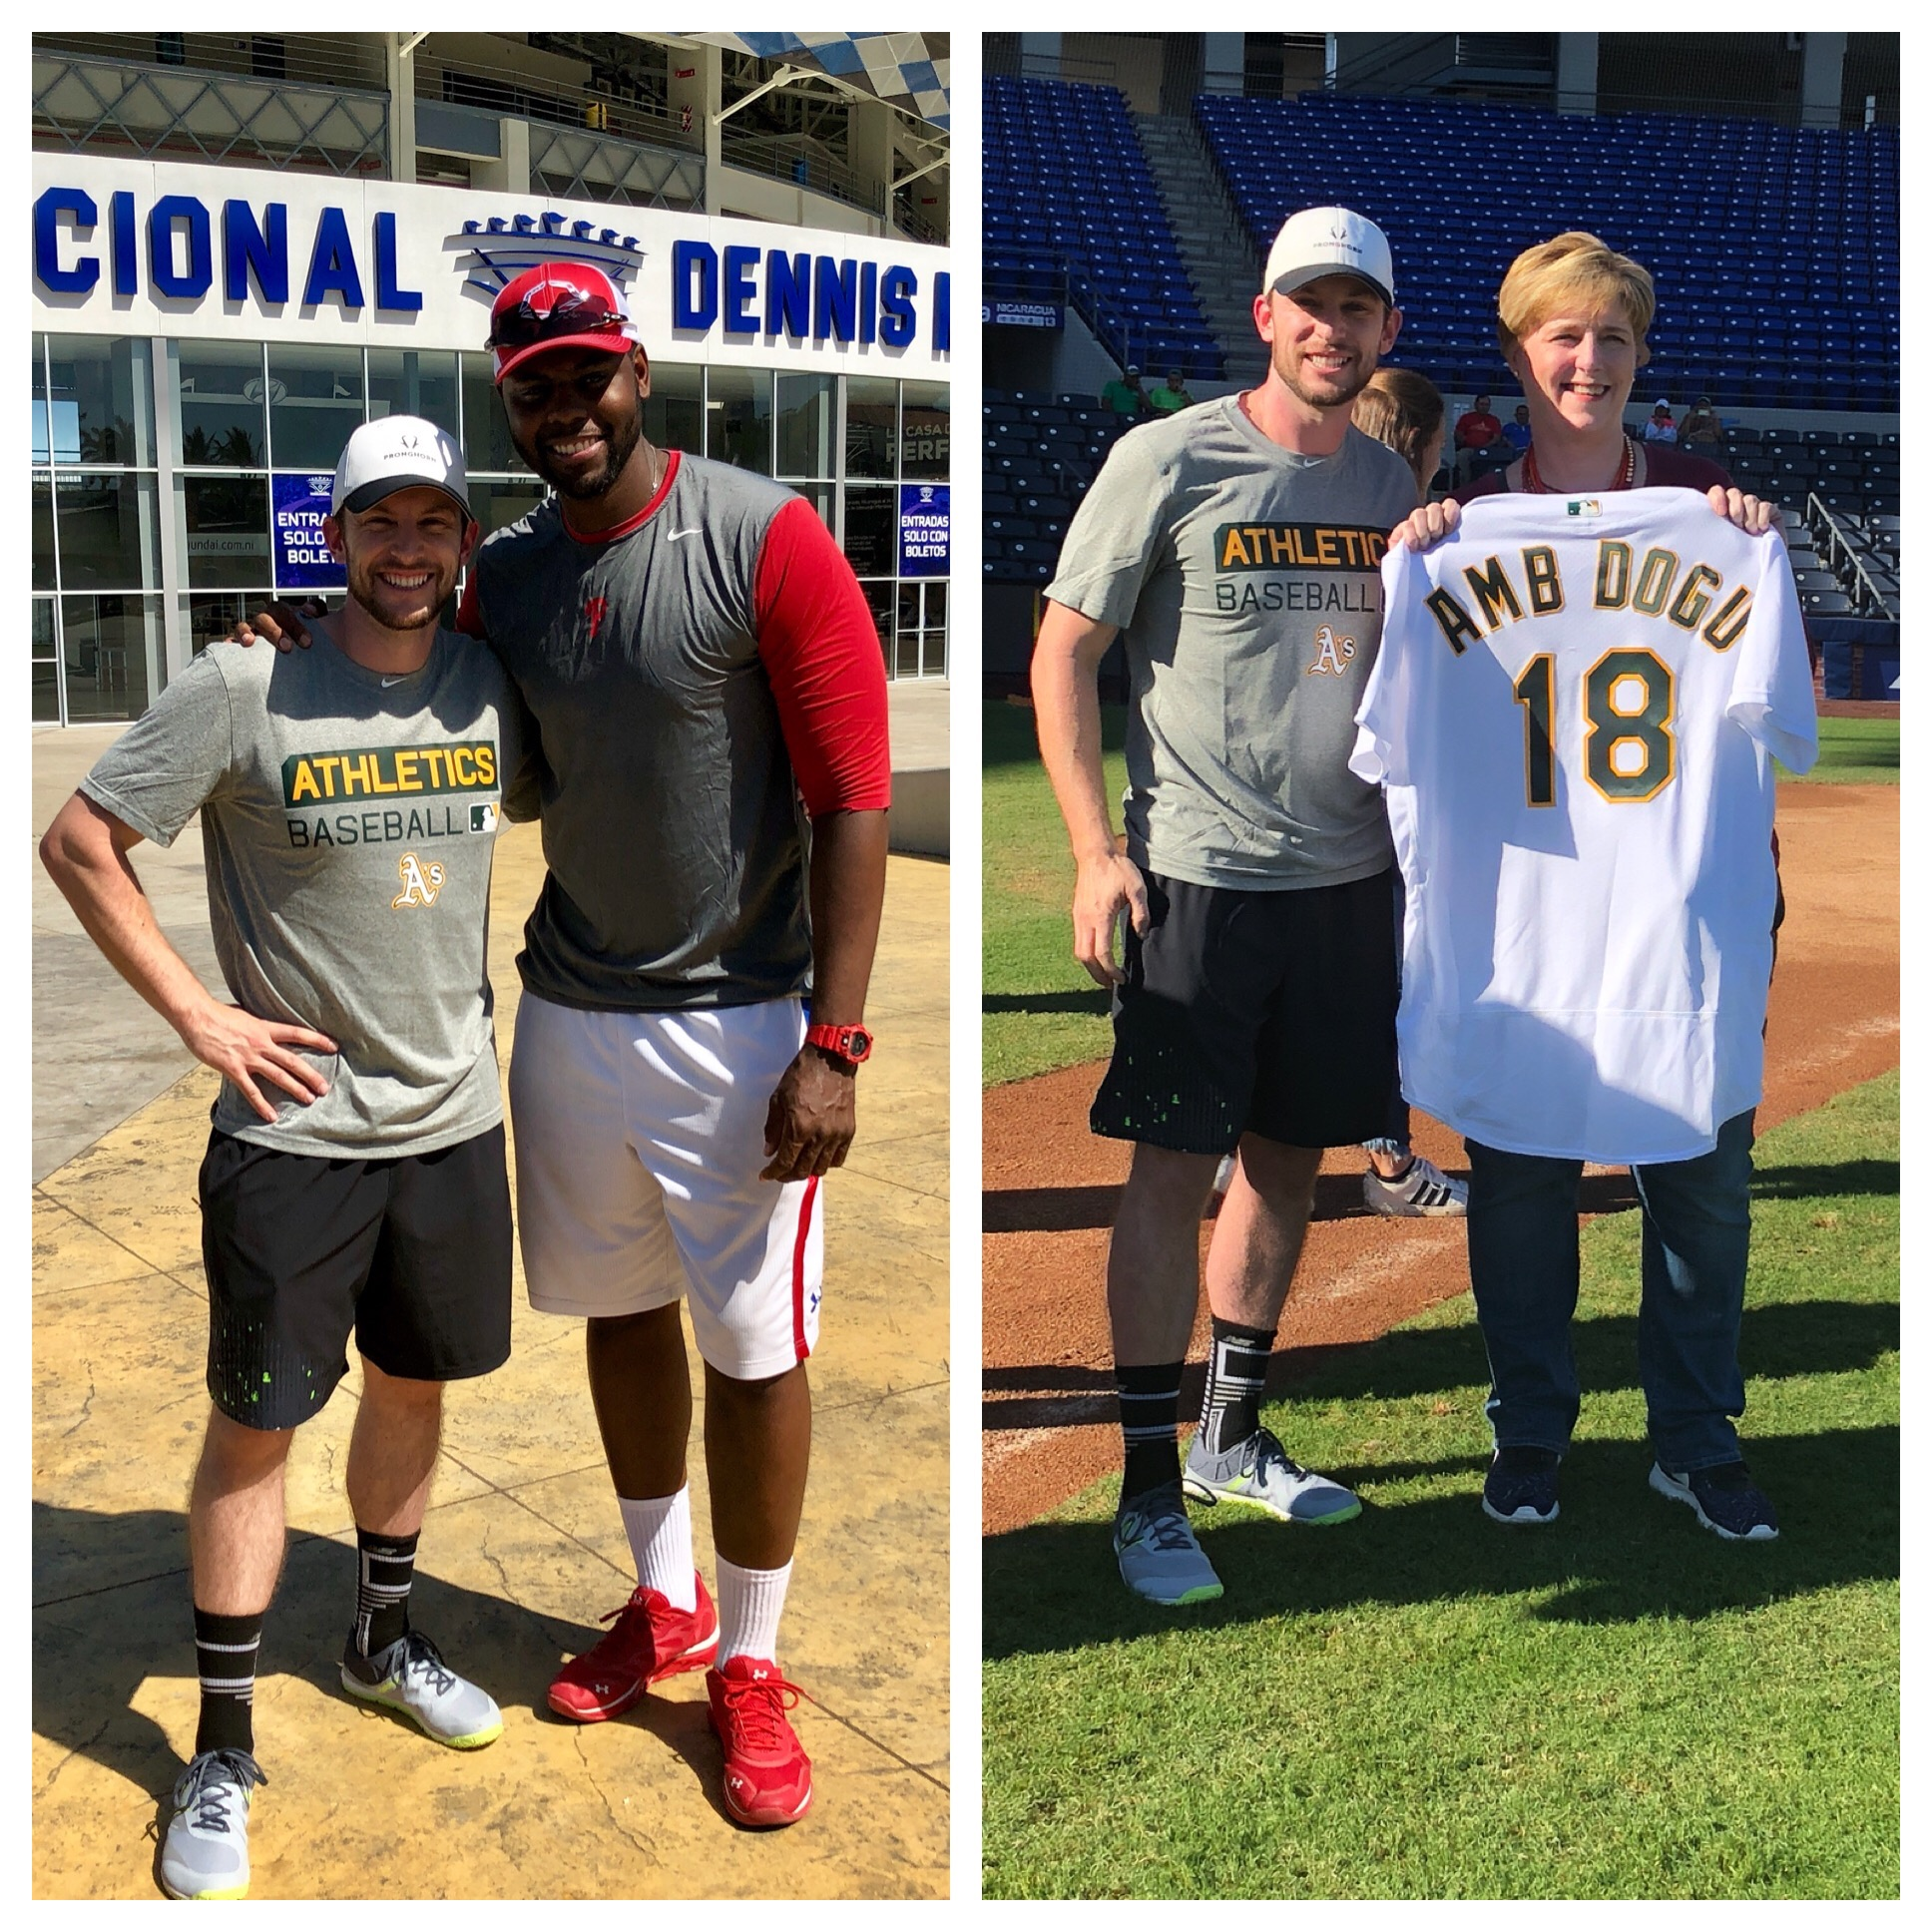 Lowrie and Mayberry Jr. pose in front of the new Estadio Nacional Dennis Martinez in Managua; Lowrie gifts Ambassador Dogu an Oakland A's jersey.Photos by Milessa Lowrie.